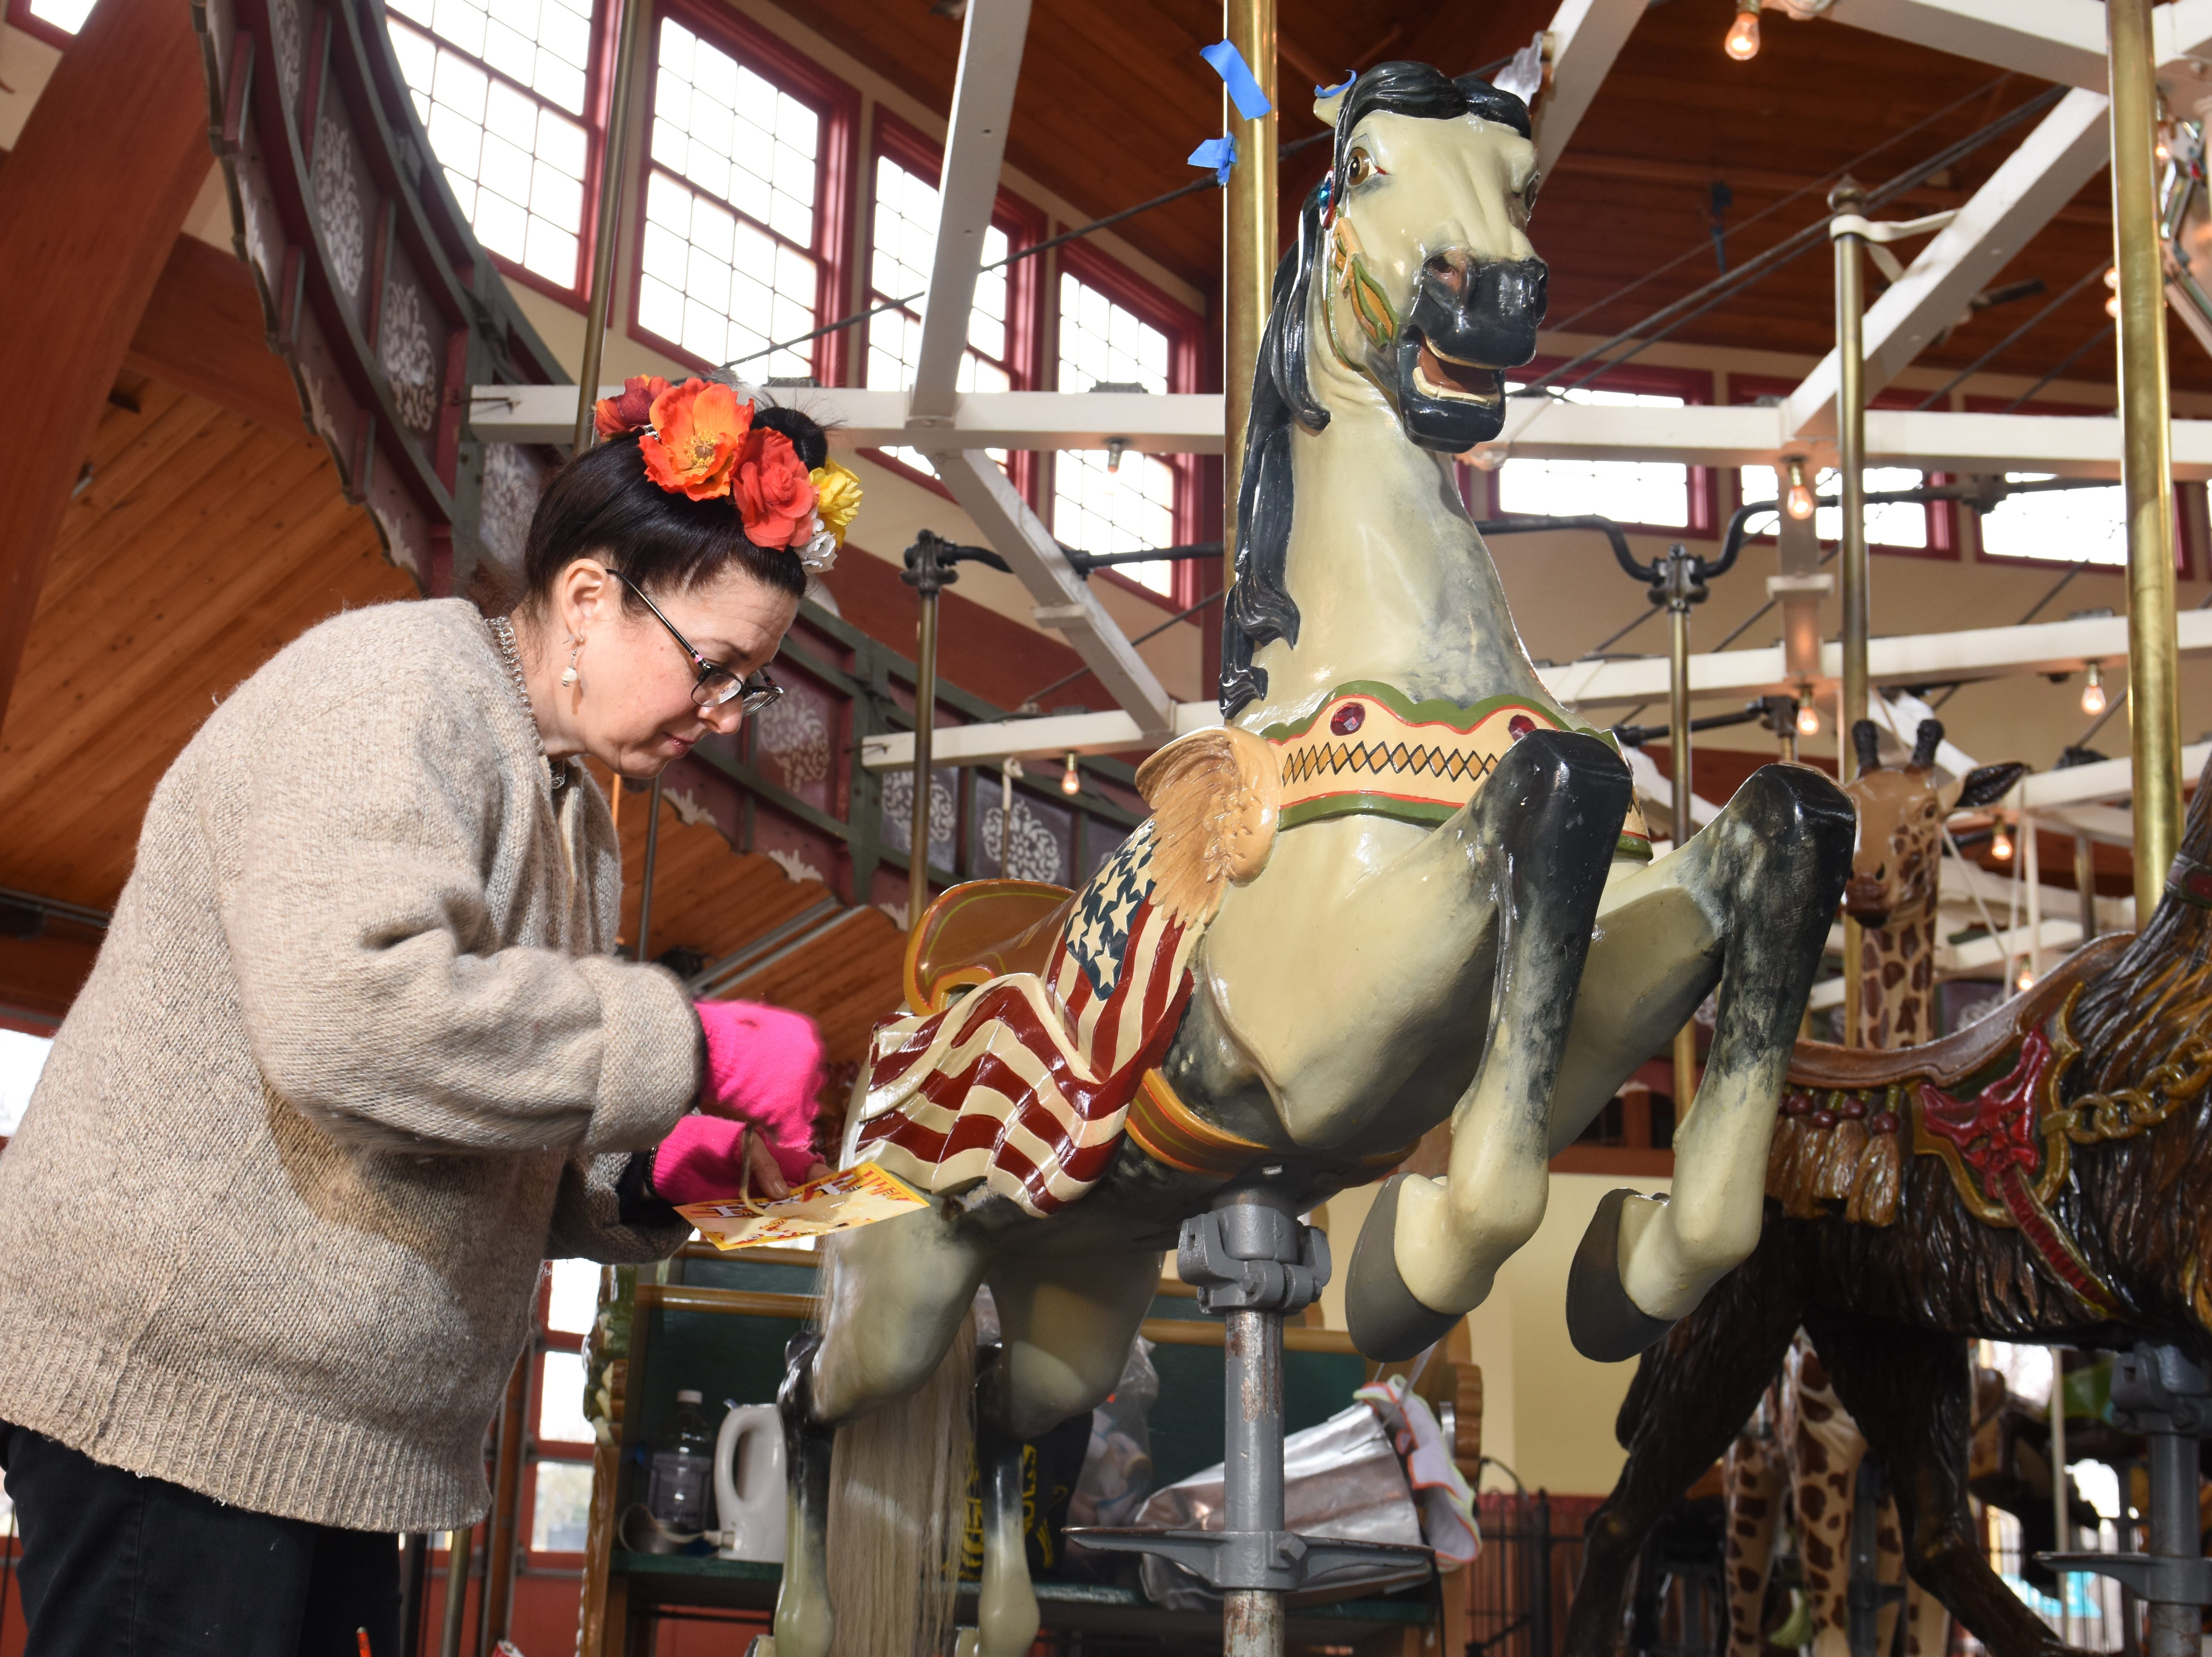 Julie Fournier paints one of the many carousel horse's with an American flag on it's rear quarter at Greenfield Village.